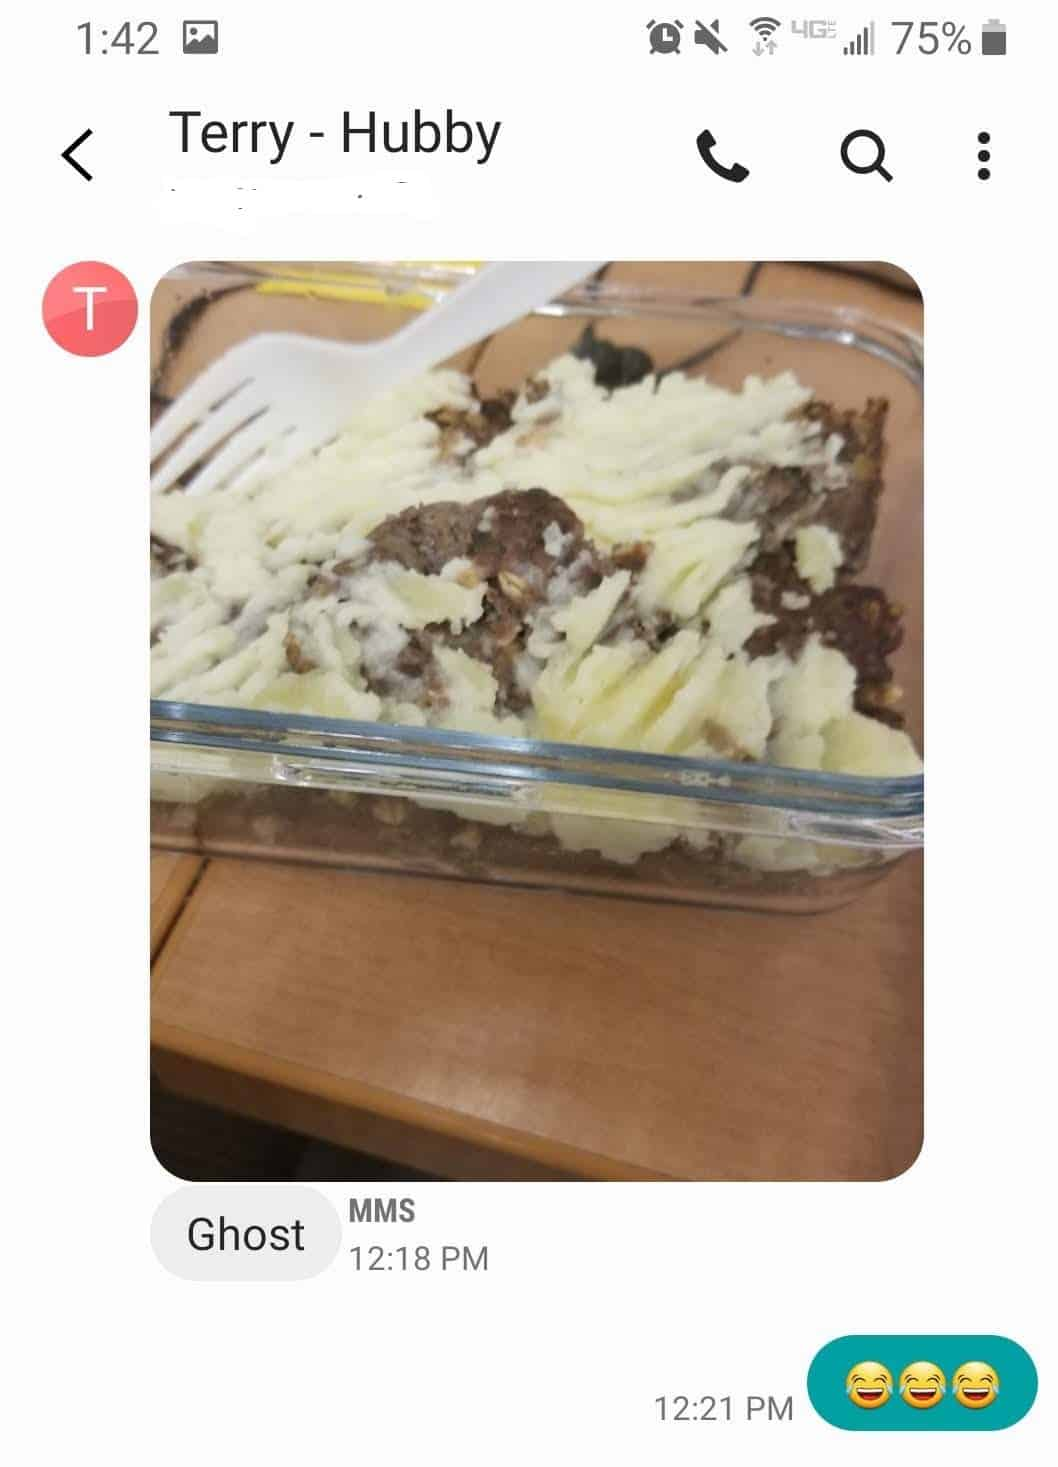 Text message response about ghost meatloaf